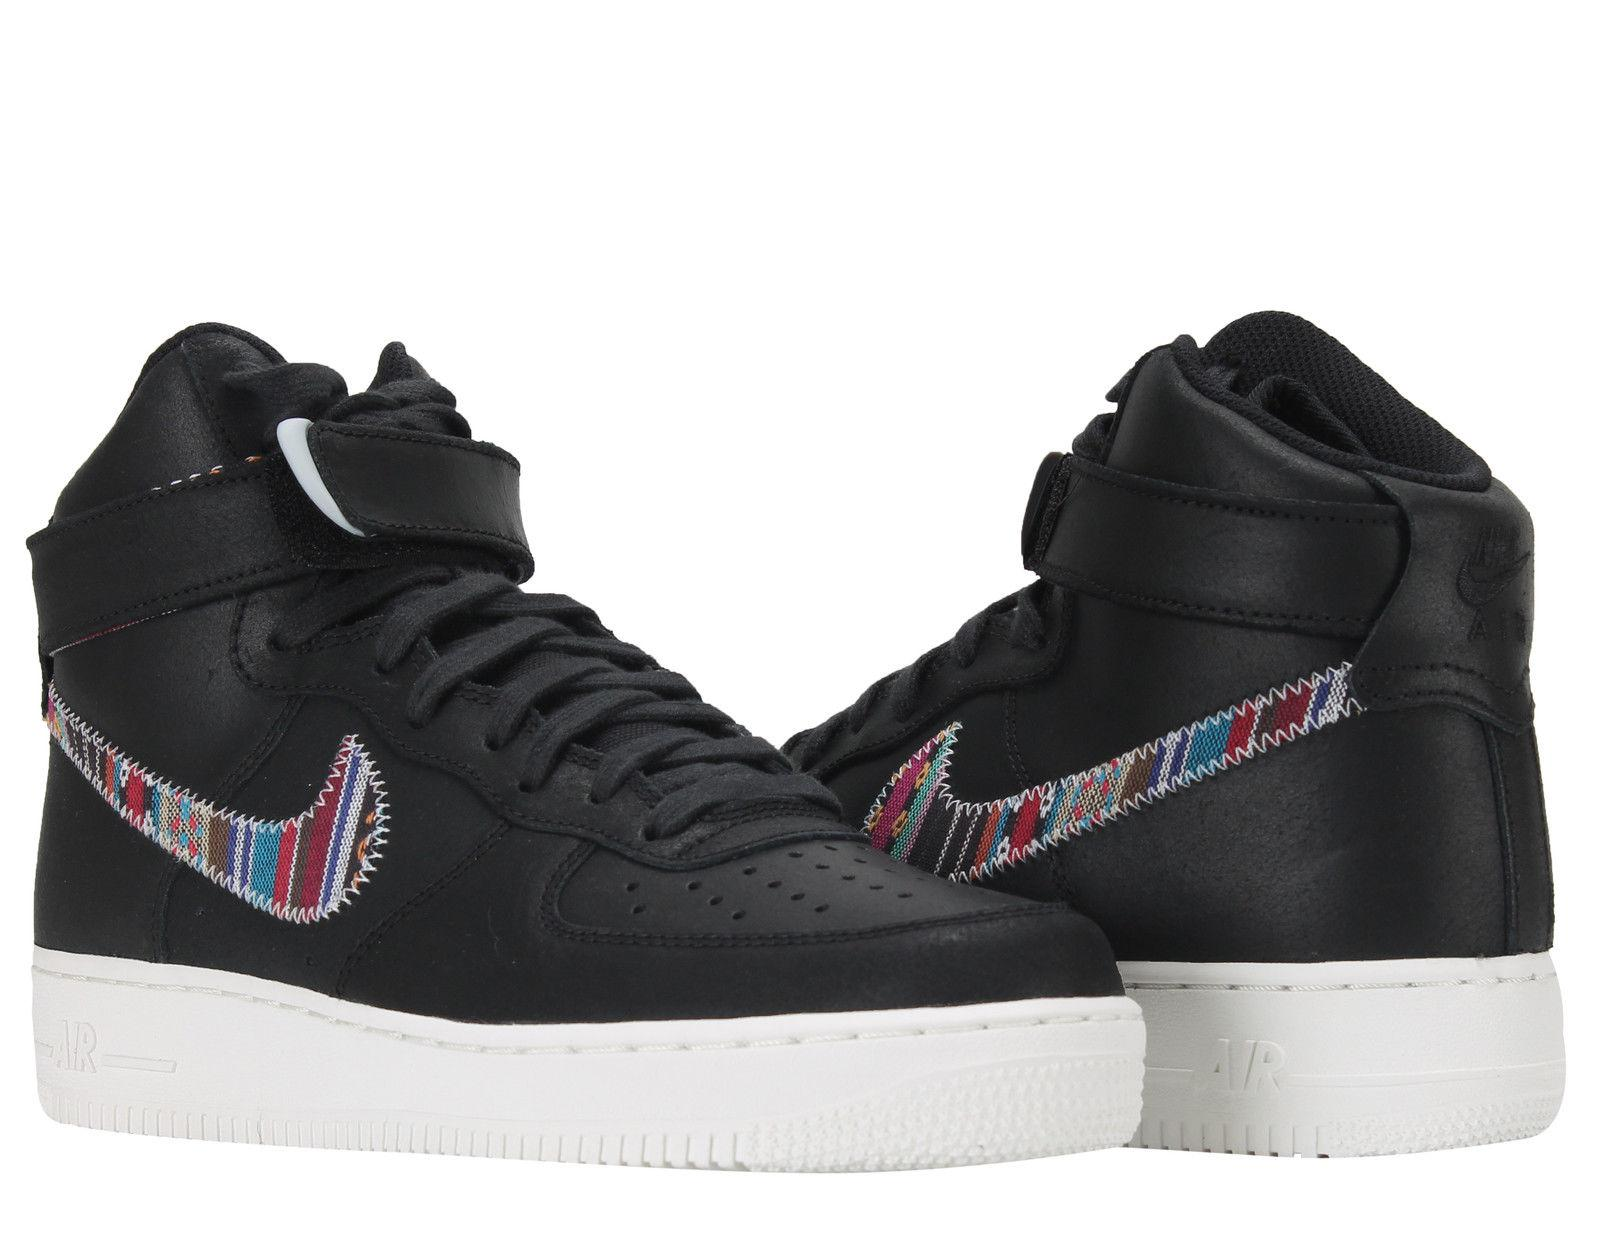 "NIKE AIR FORCE 1 HIGH '07 LV8 ""Afro Punk""in BLACK(806403-006)"